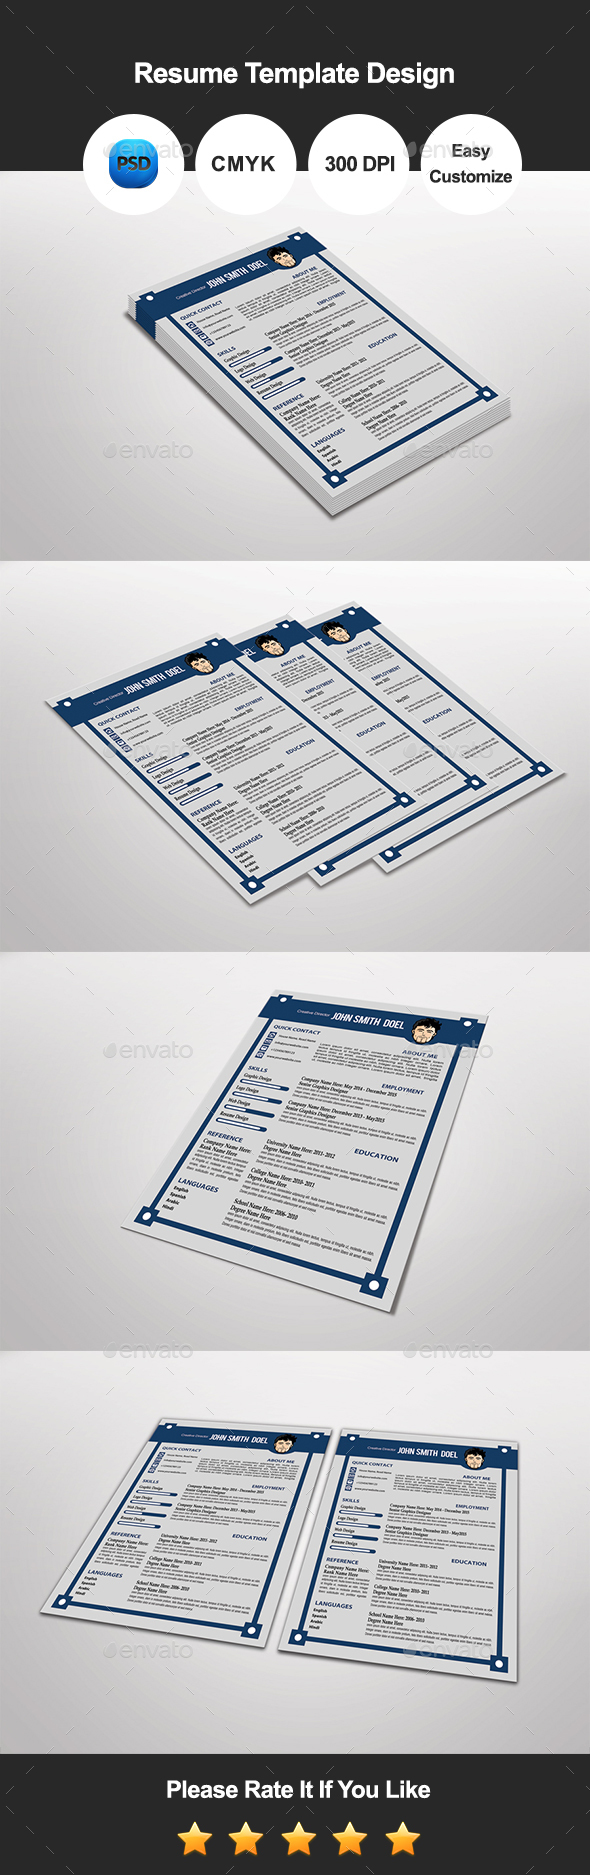 Tanli Resume Template Design